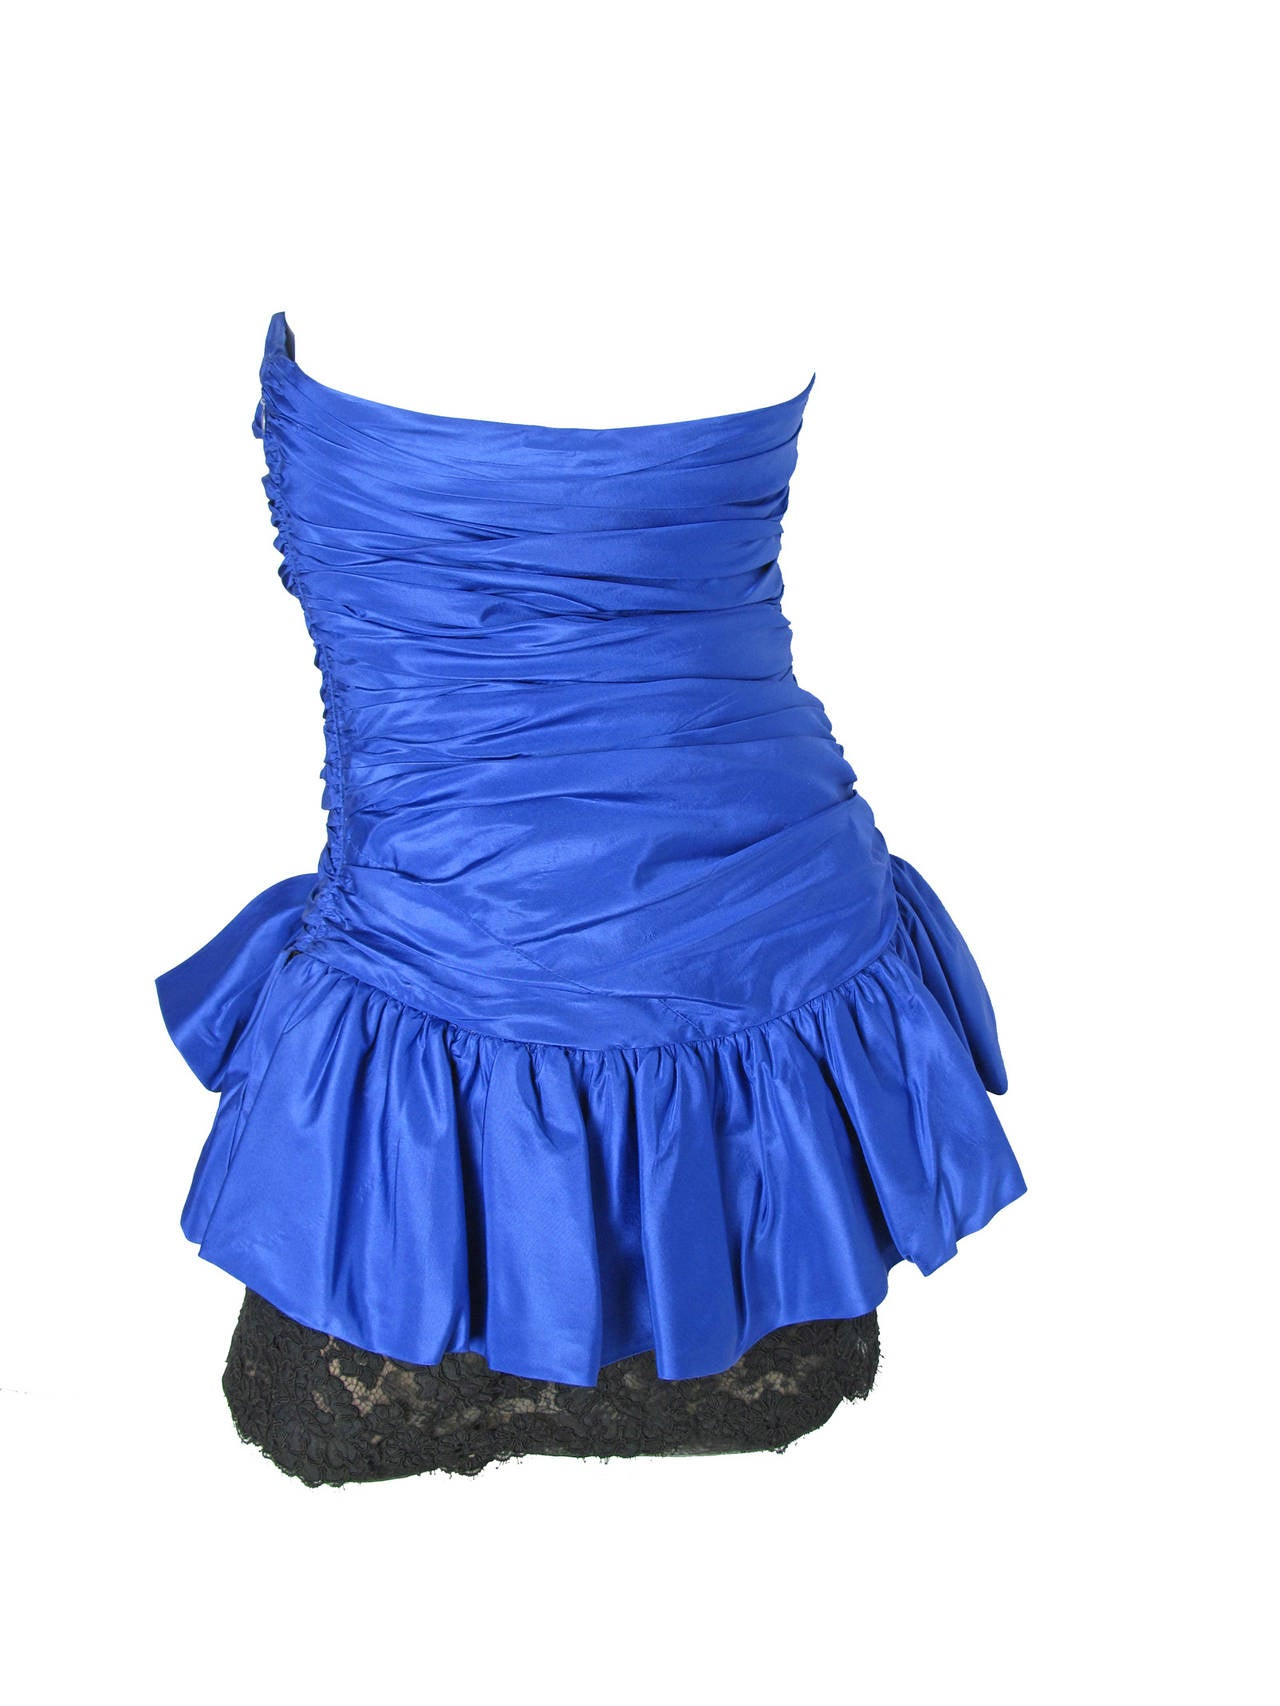 Oscar de la Renta blue taffeta and black lace strapless dress 3